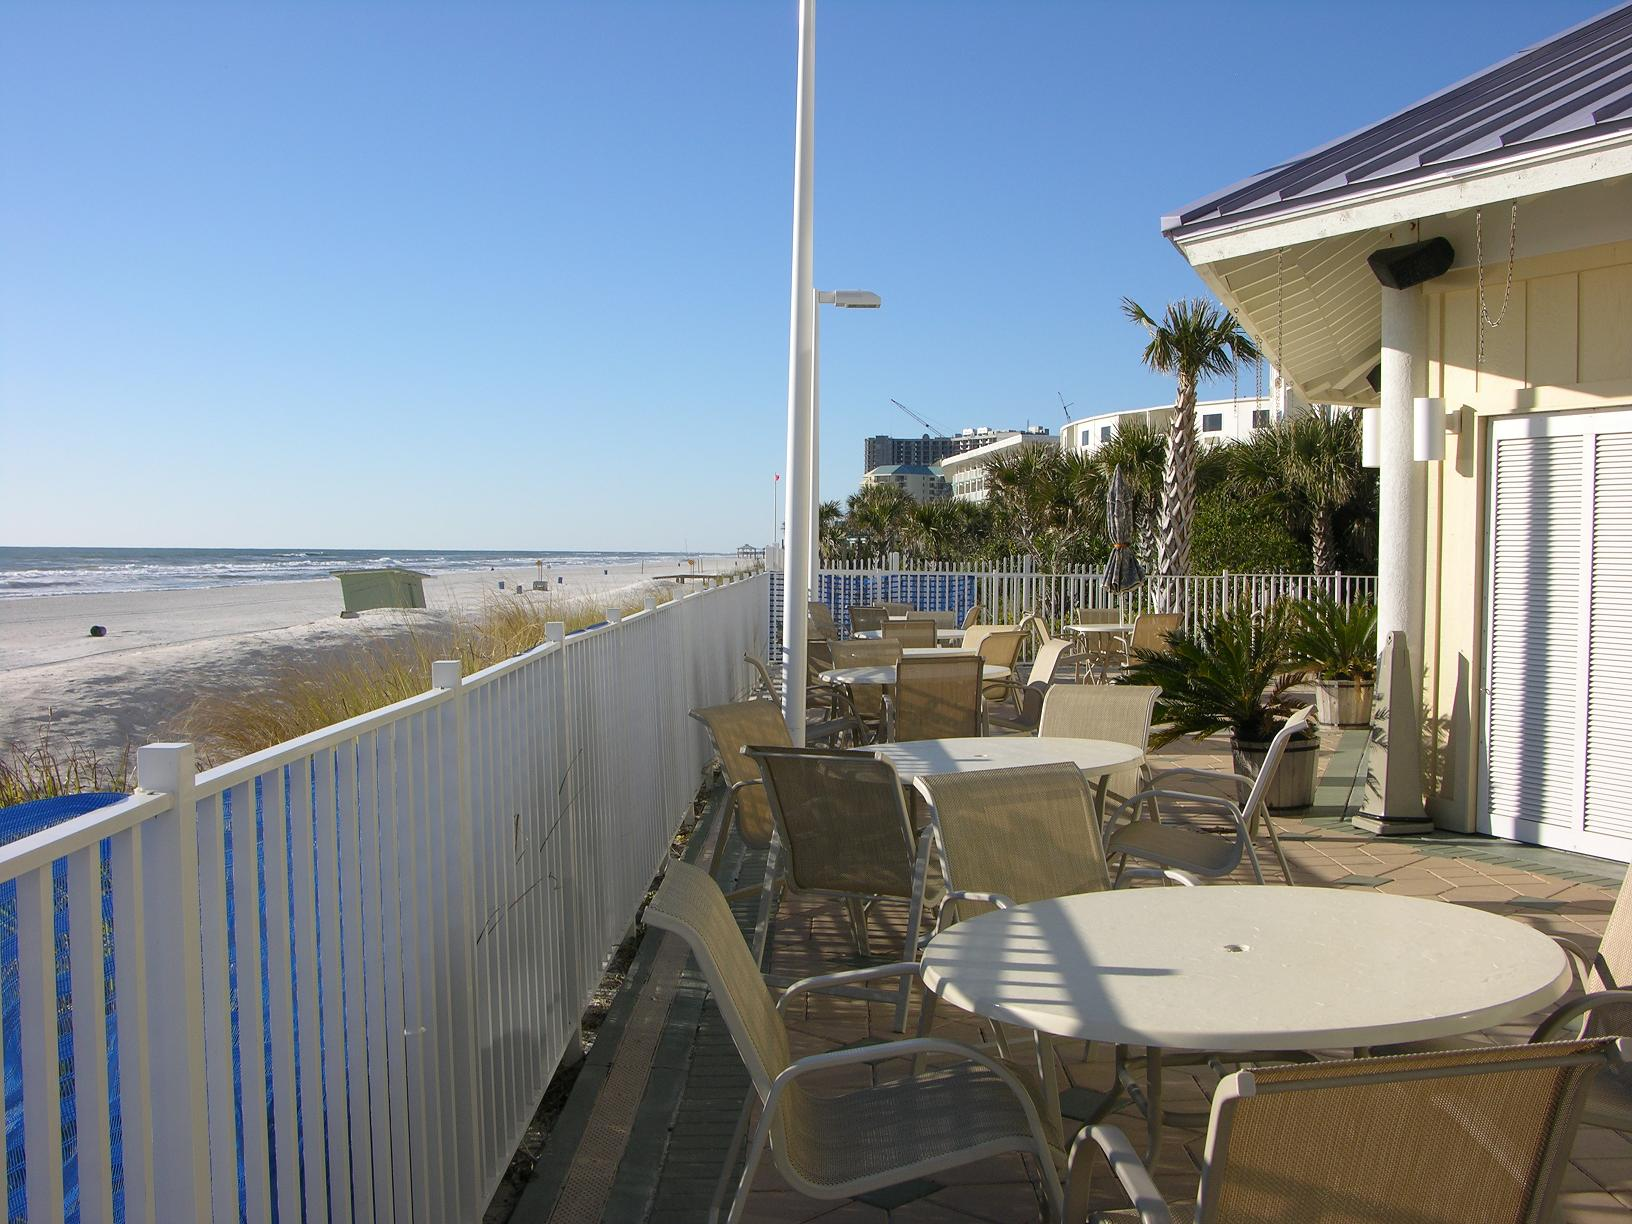 Beachside Resort Panama City Beach Fl Gray Biji Us